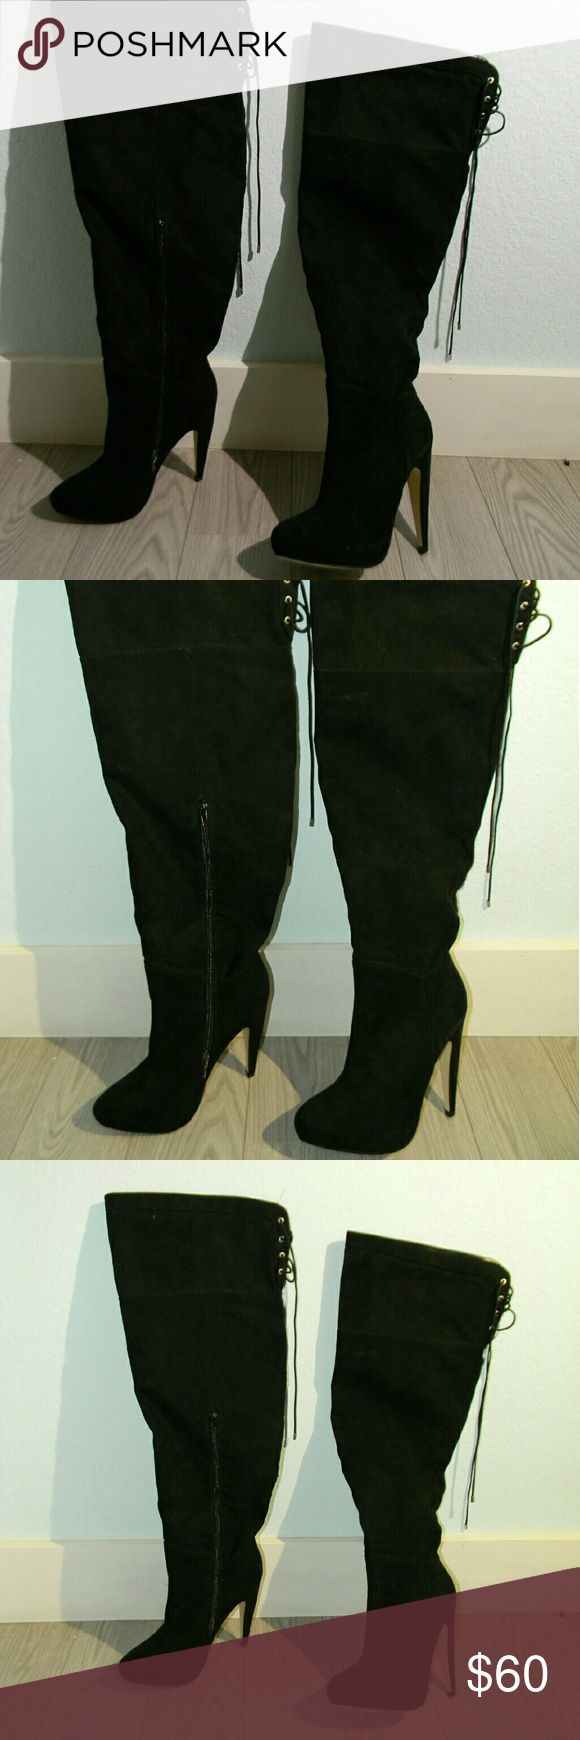 Wide Calf Knee High Black Boots Super stylish and sexy! Never worn out.. brand new. Wide Calf.. Shoes Over the Knee Boots